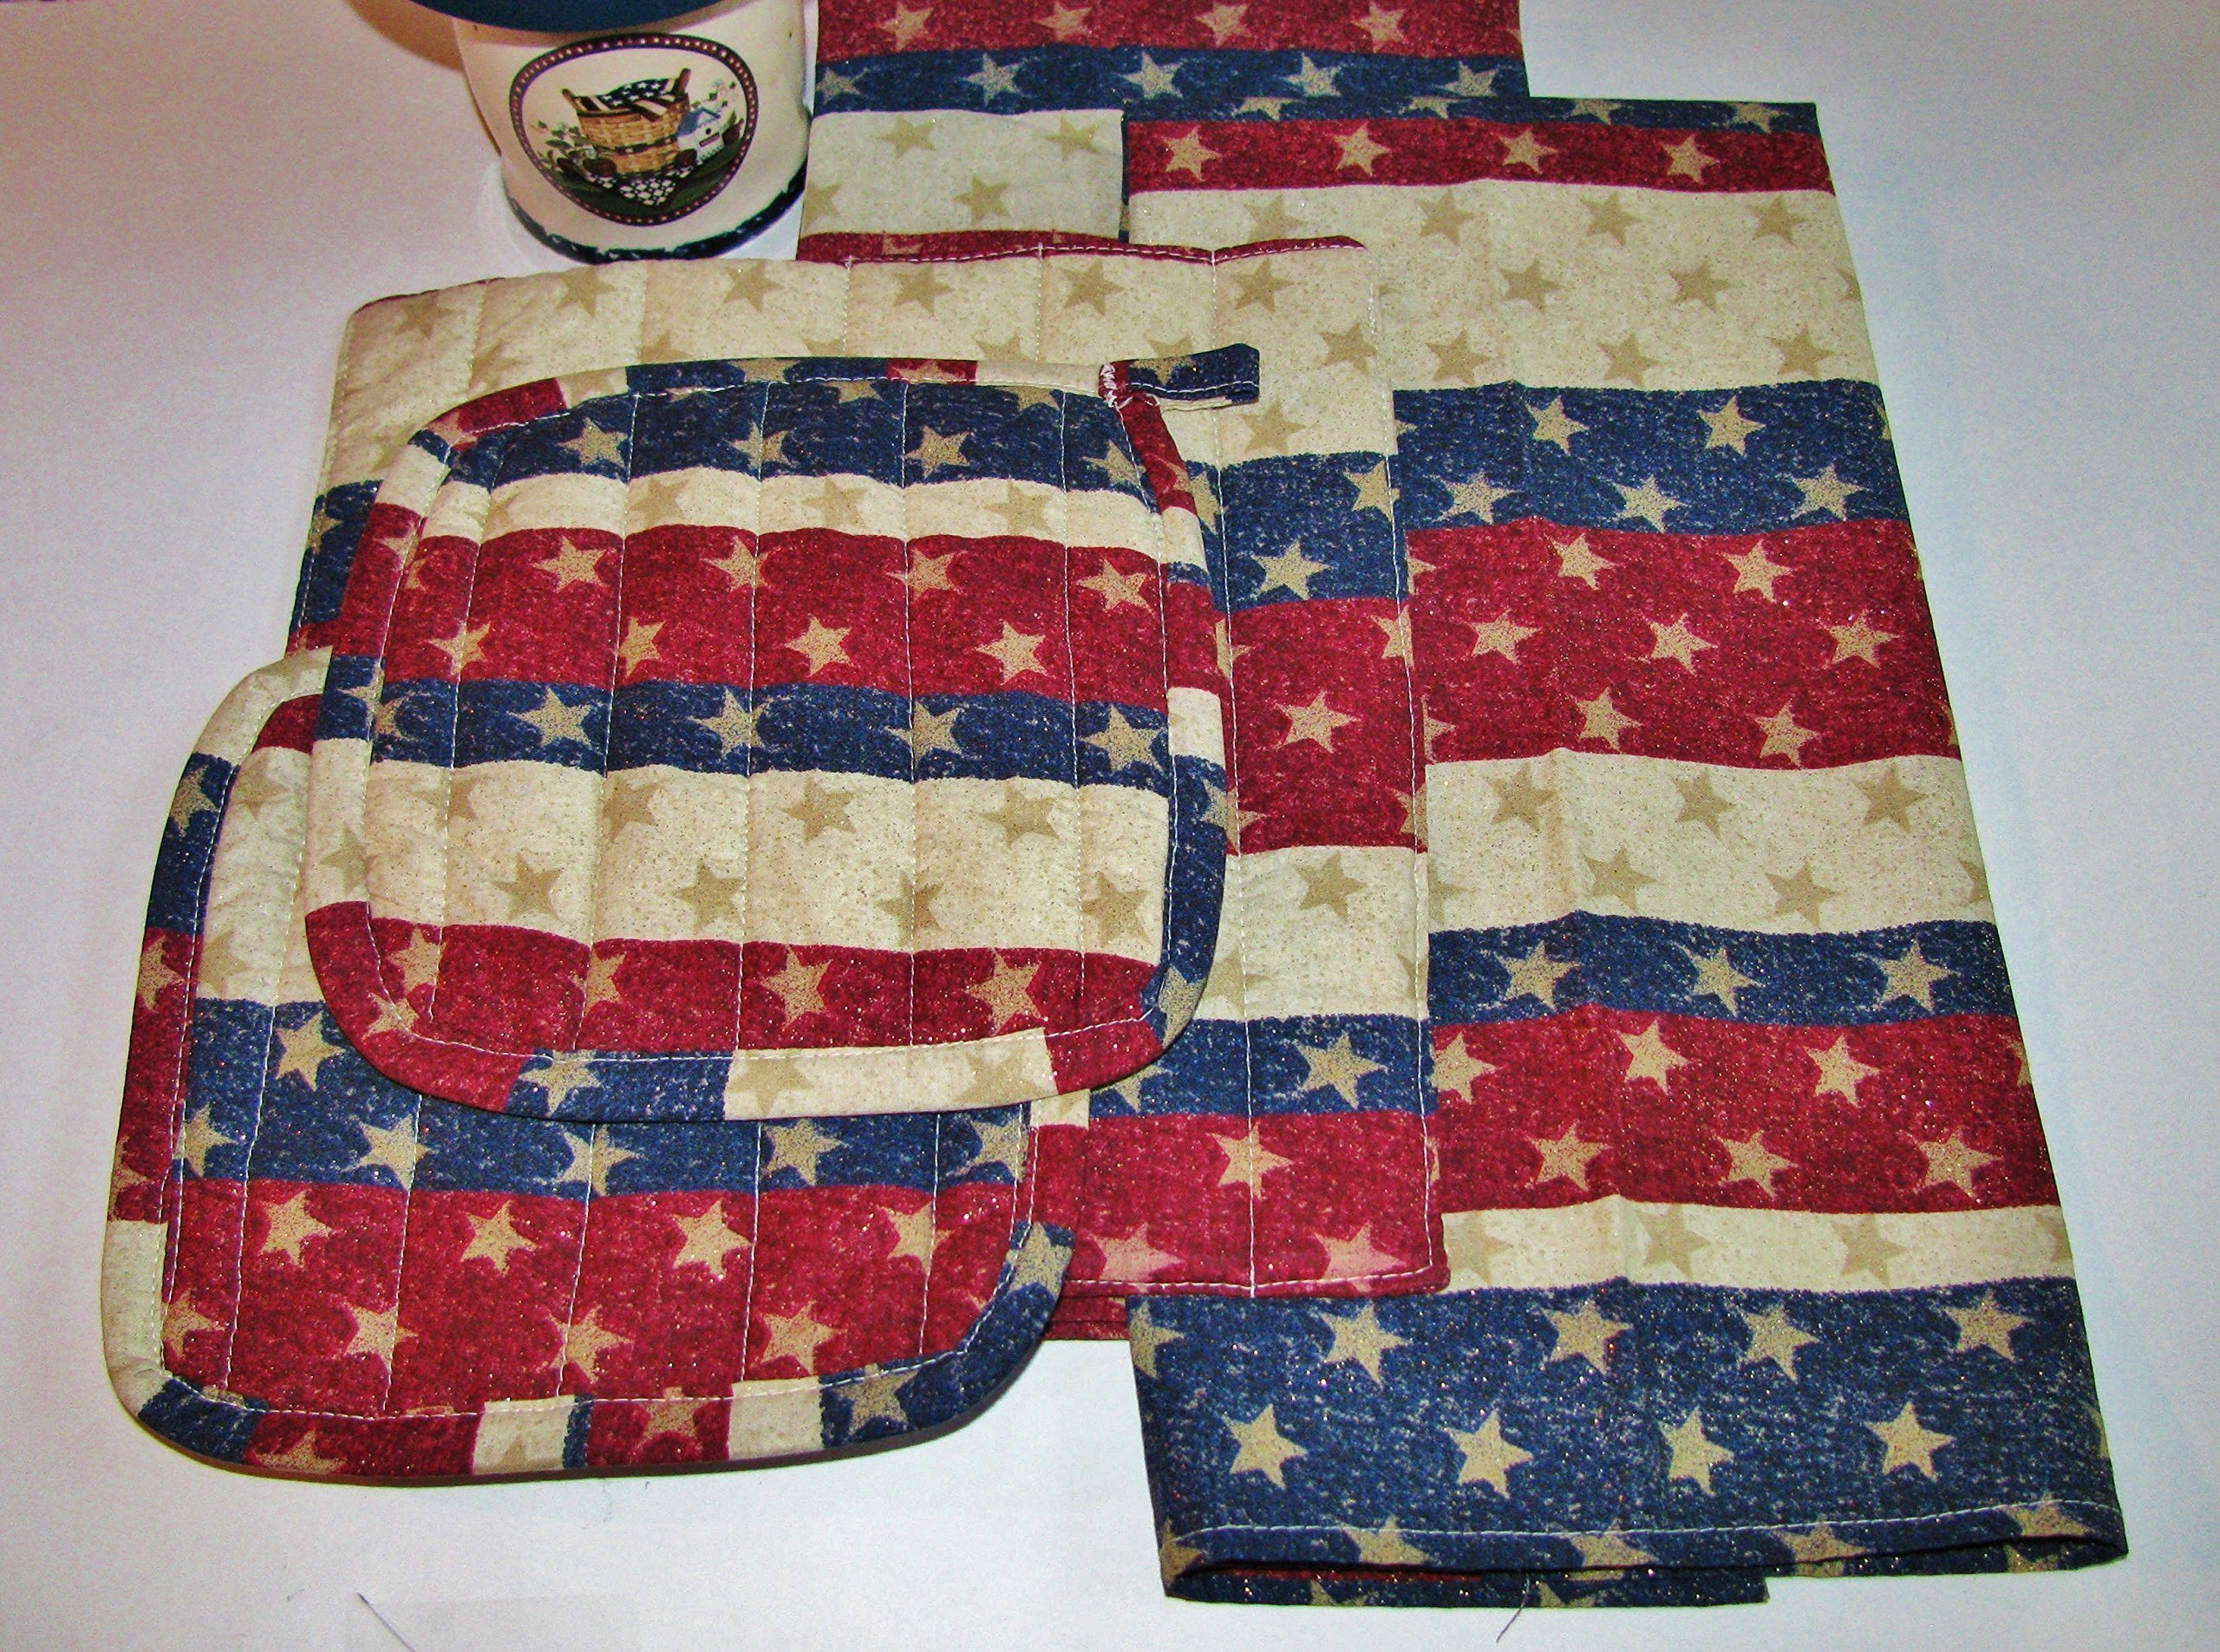 Stars & Stripes Kitchen Linens Set (5 Pieces Total) by Country Kitchen Linens